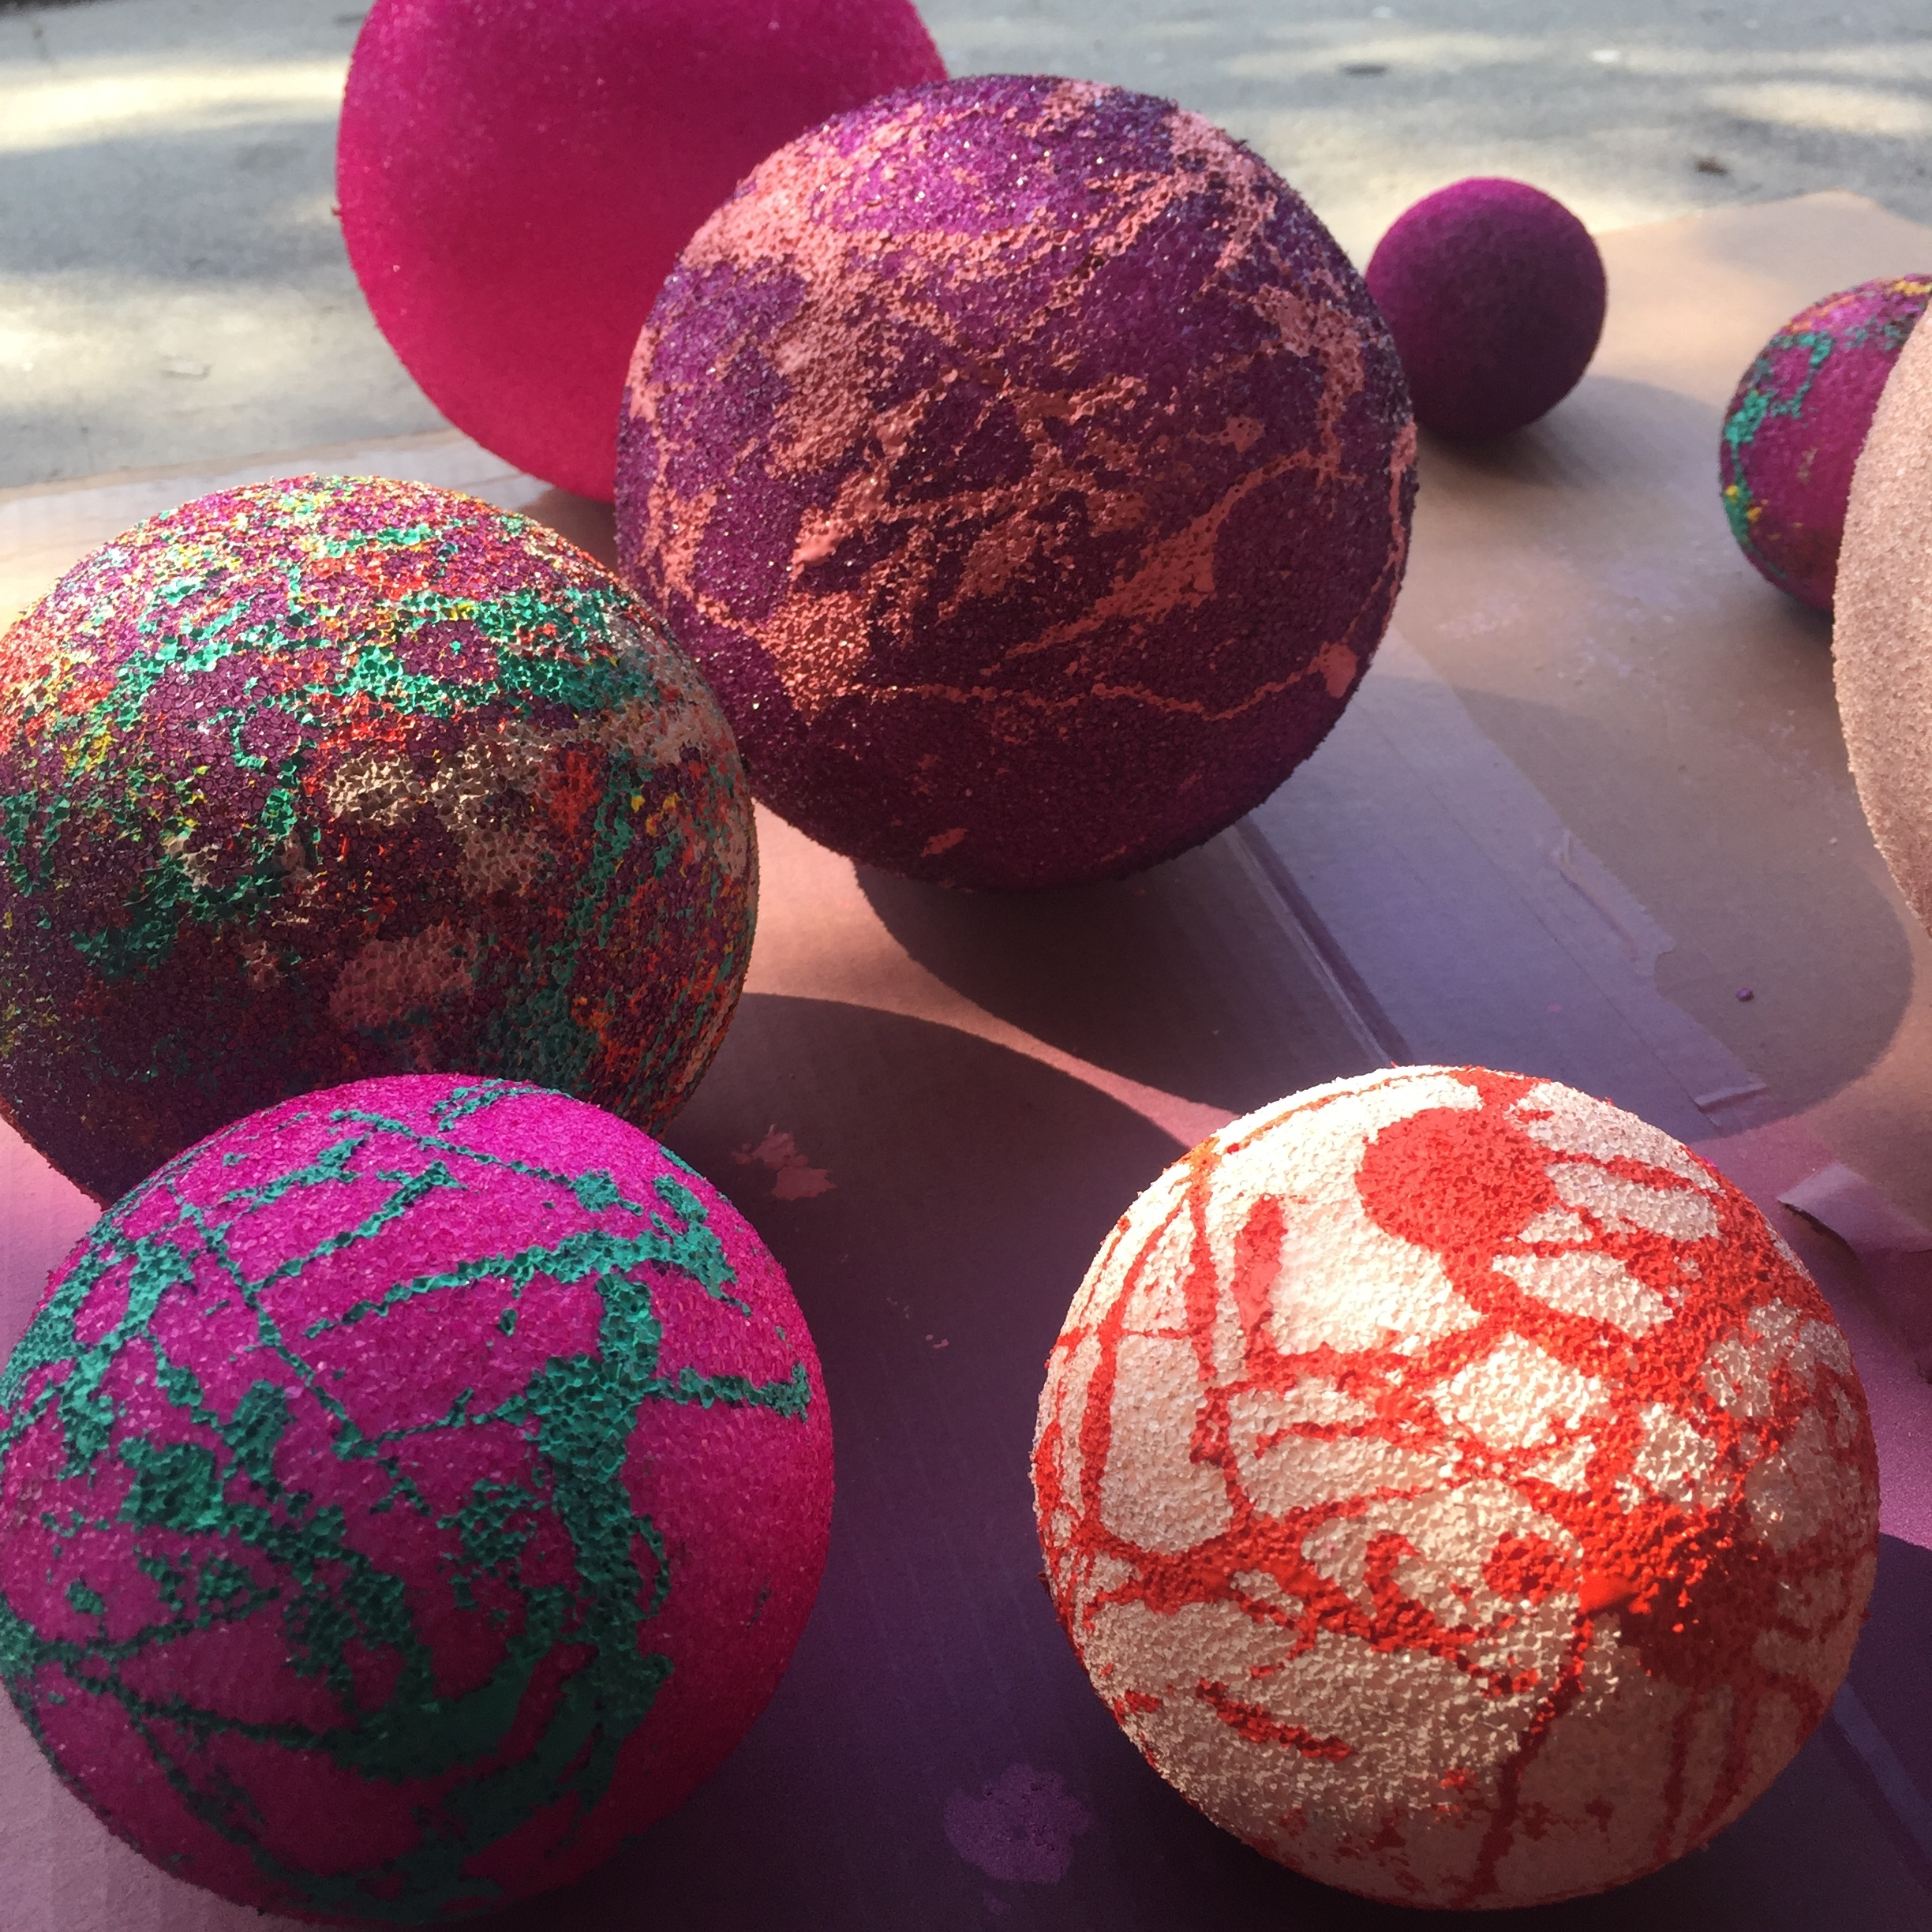 Details of hand-painted balls that are part of the art/window installation created by Parisa Parnian for the SAVAGE MUSE X DIME NAILS collaboration.